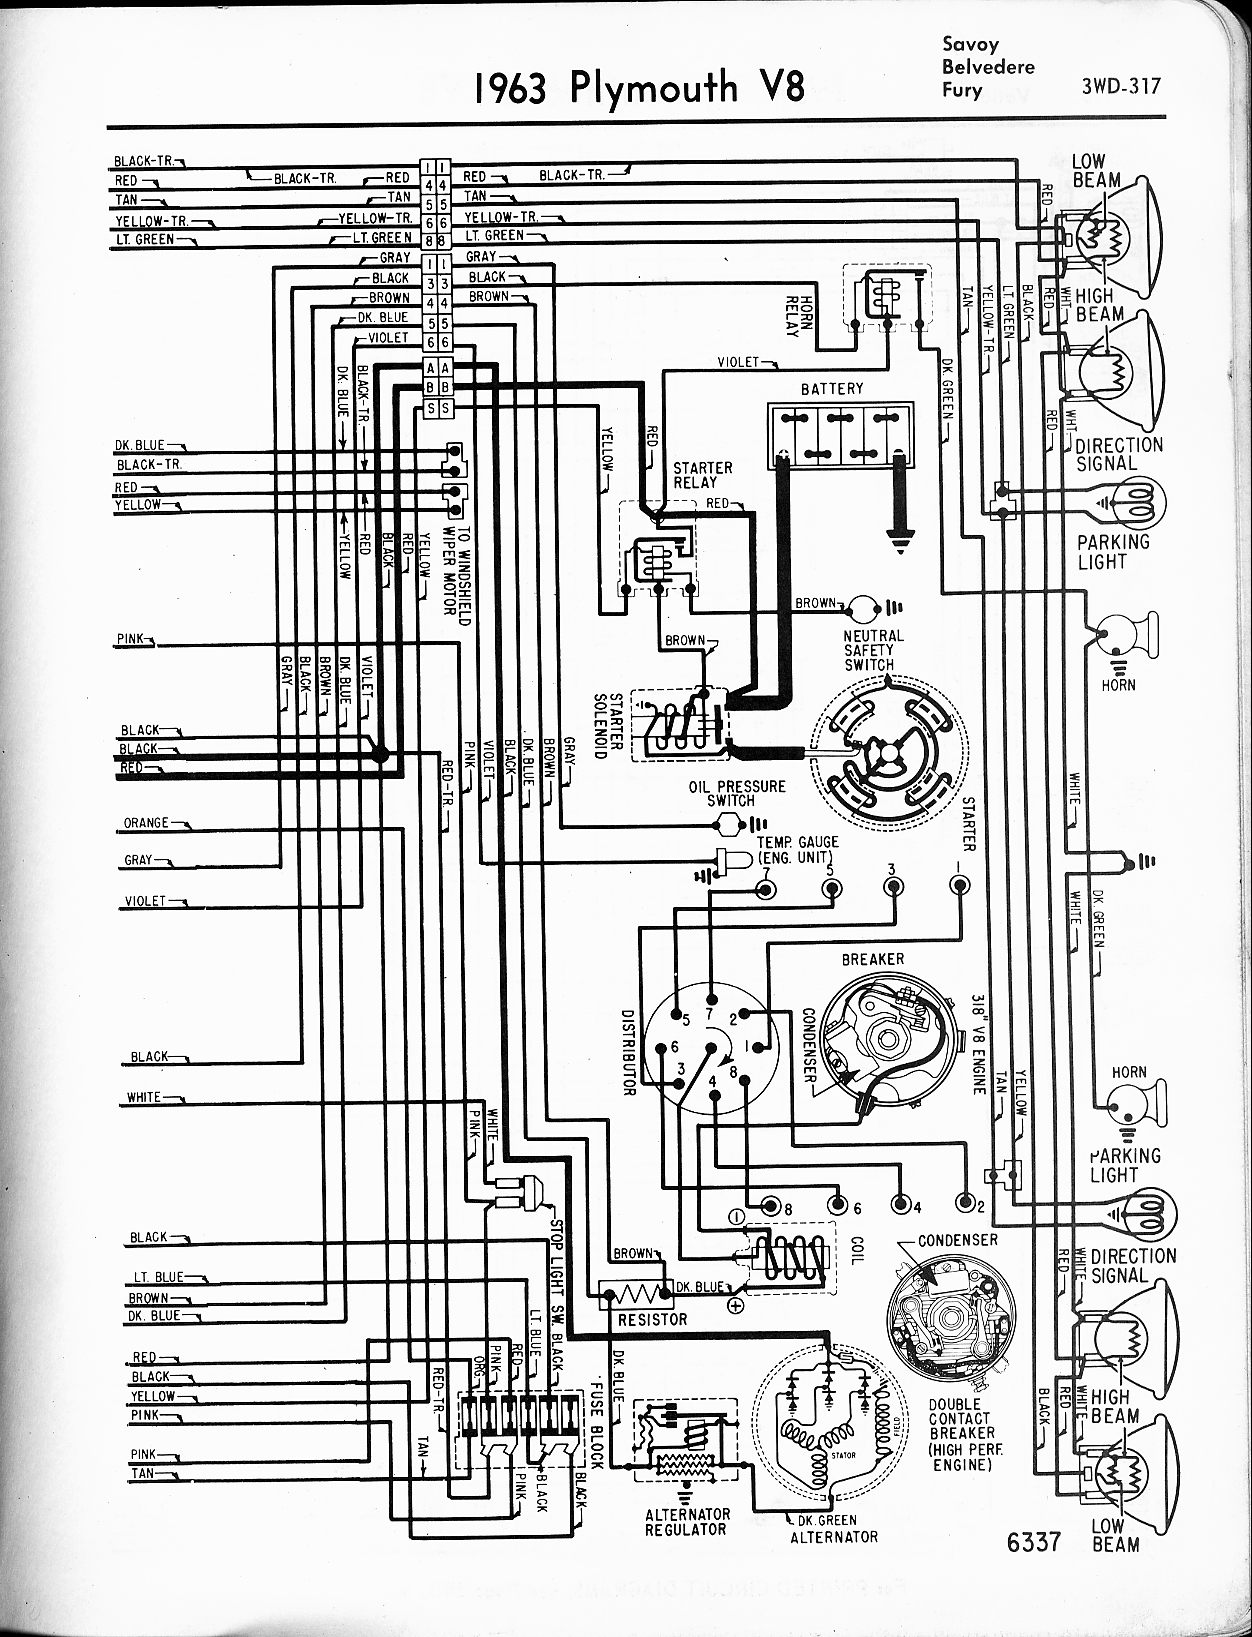 63 Valiant Wiring Diagram : 25 Wiring Diagram Images